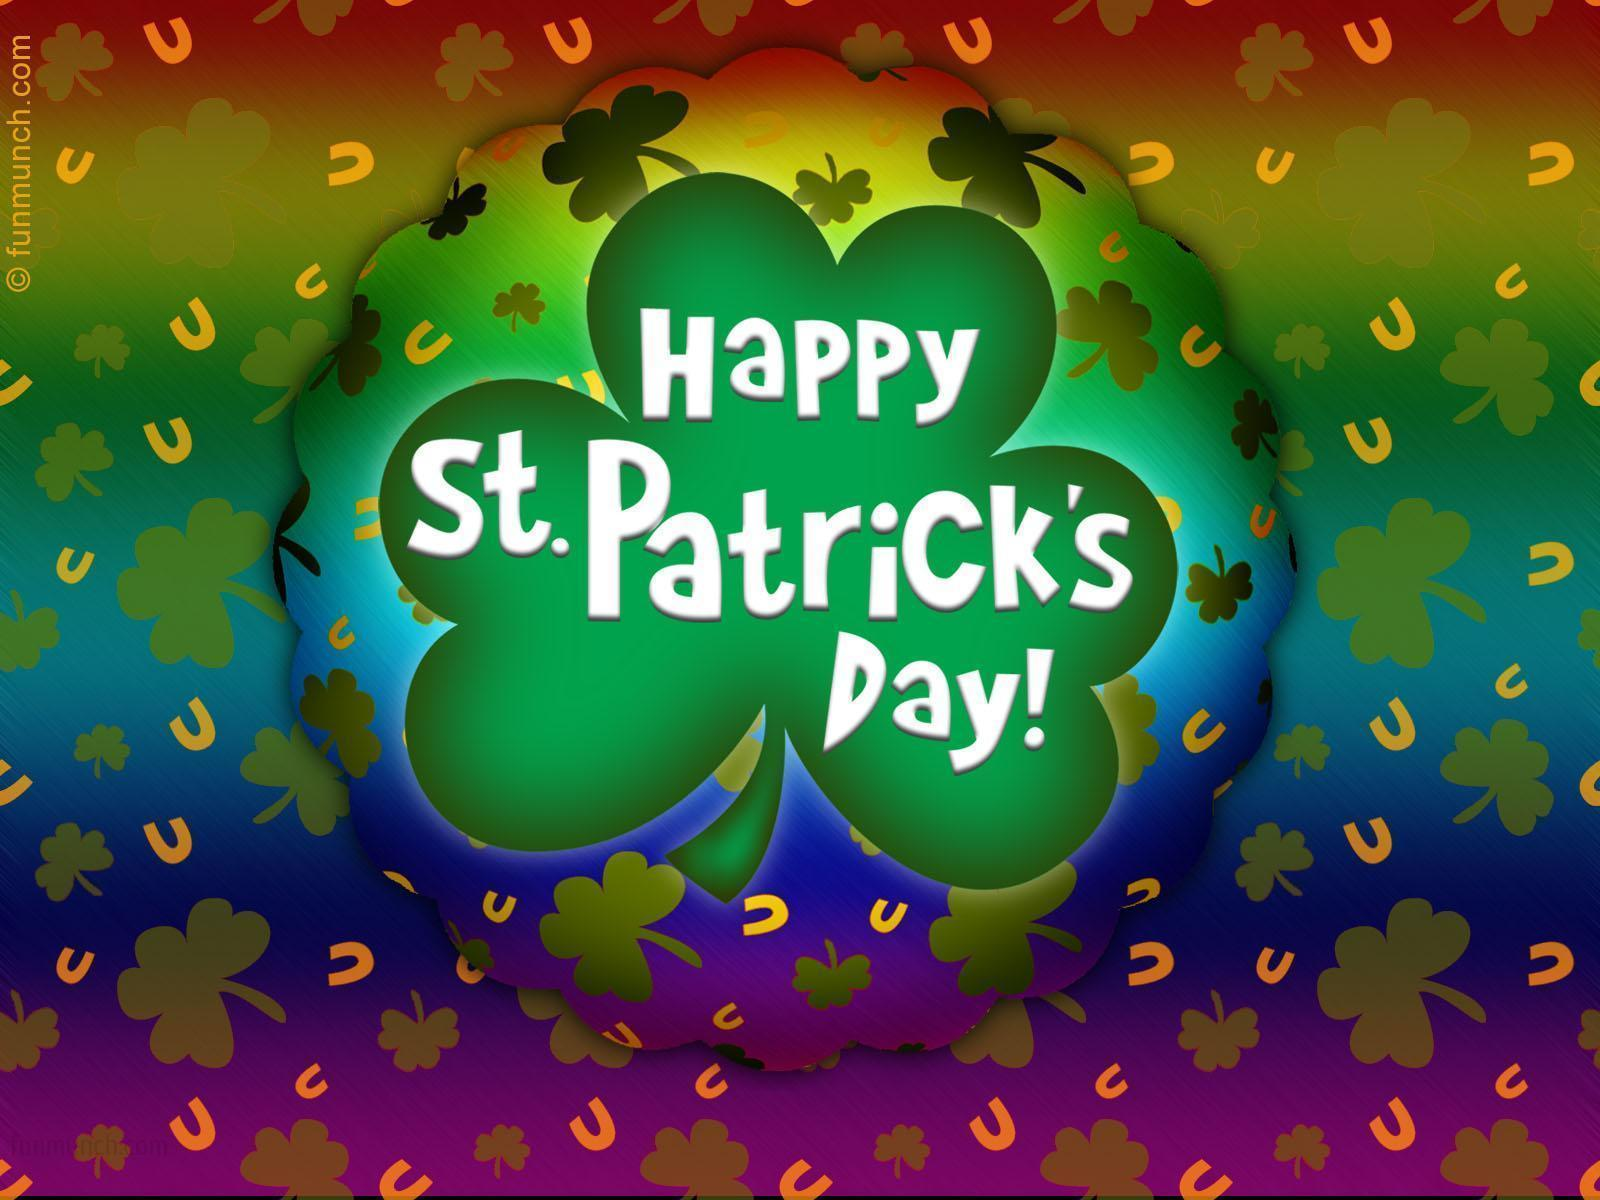 Happy St Patricks Day Wallpapers - Wallpaper Cave